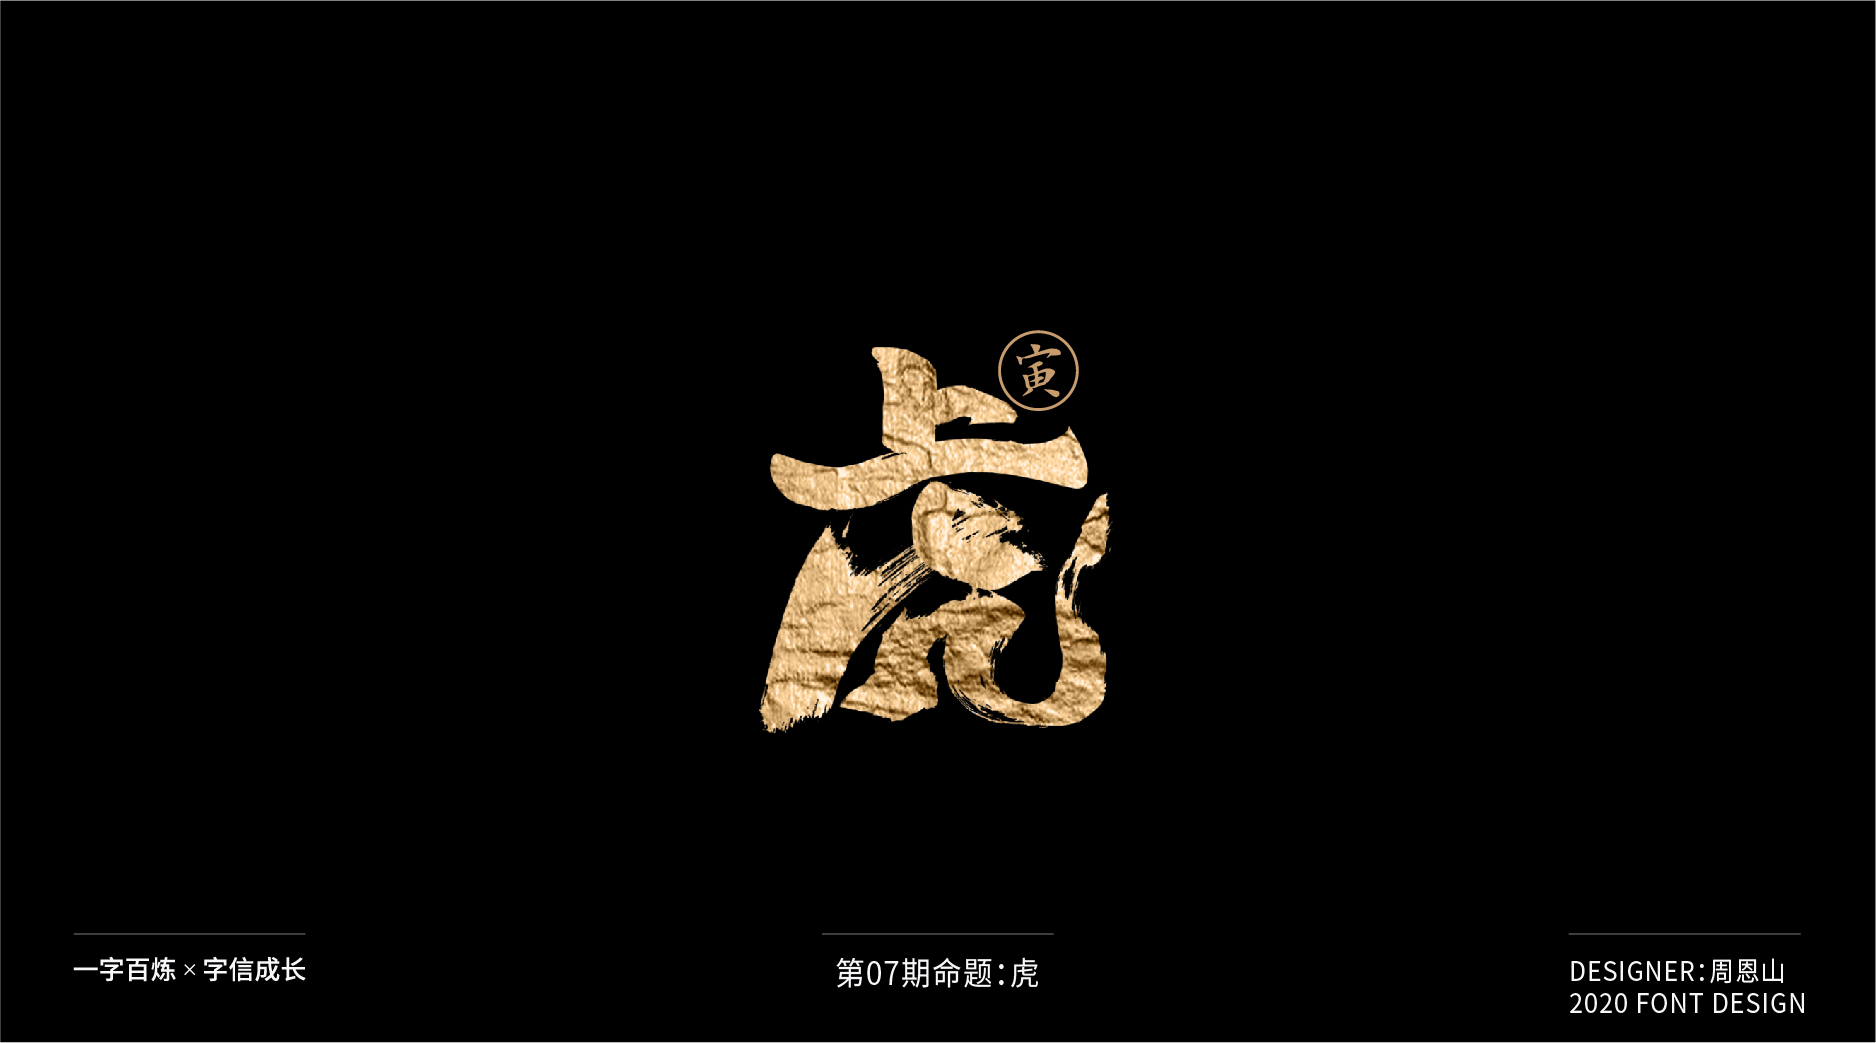 Interesting Chinese Creative Font Design-Tiger: 100 words (100 groups)